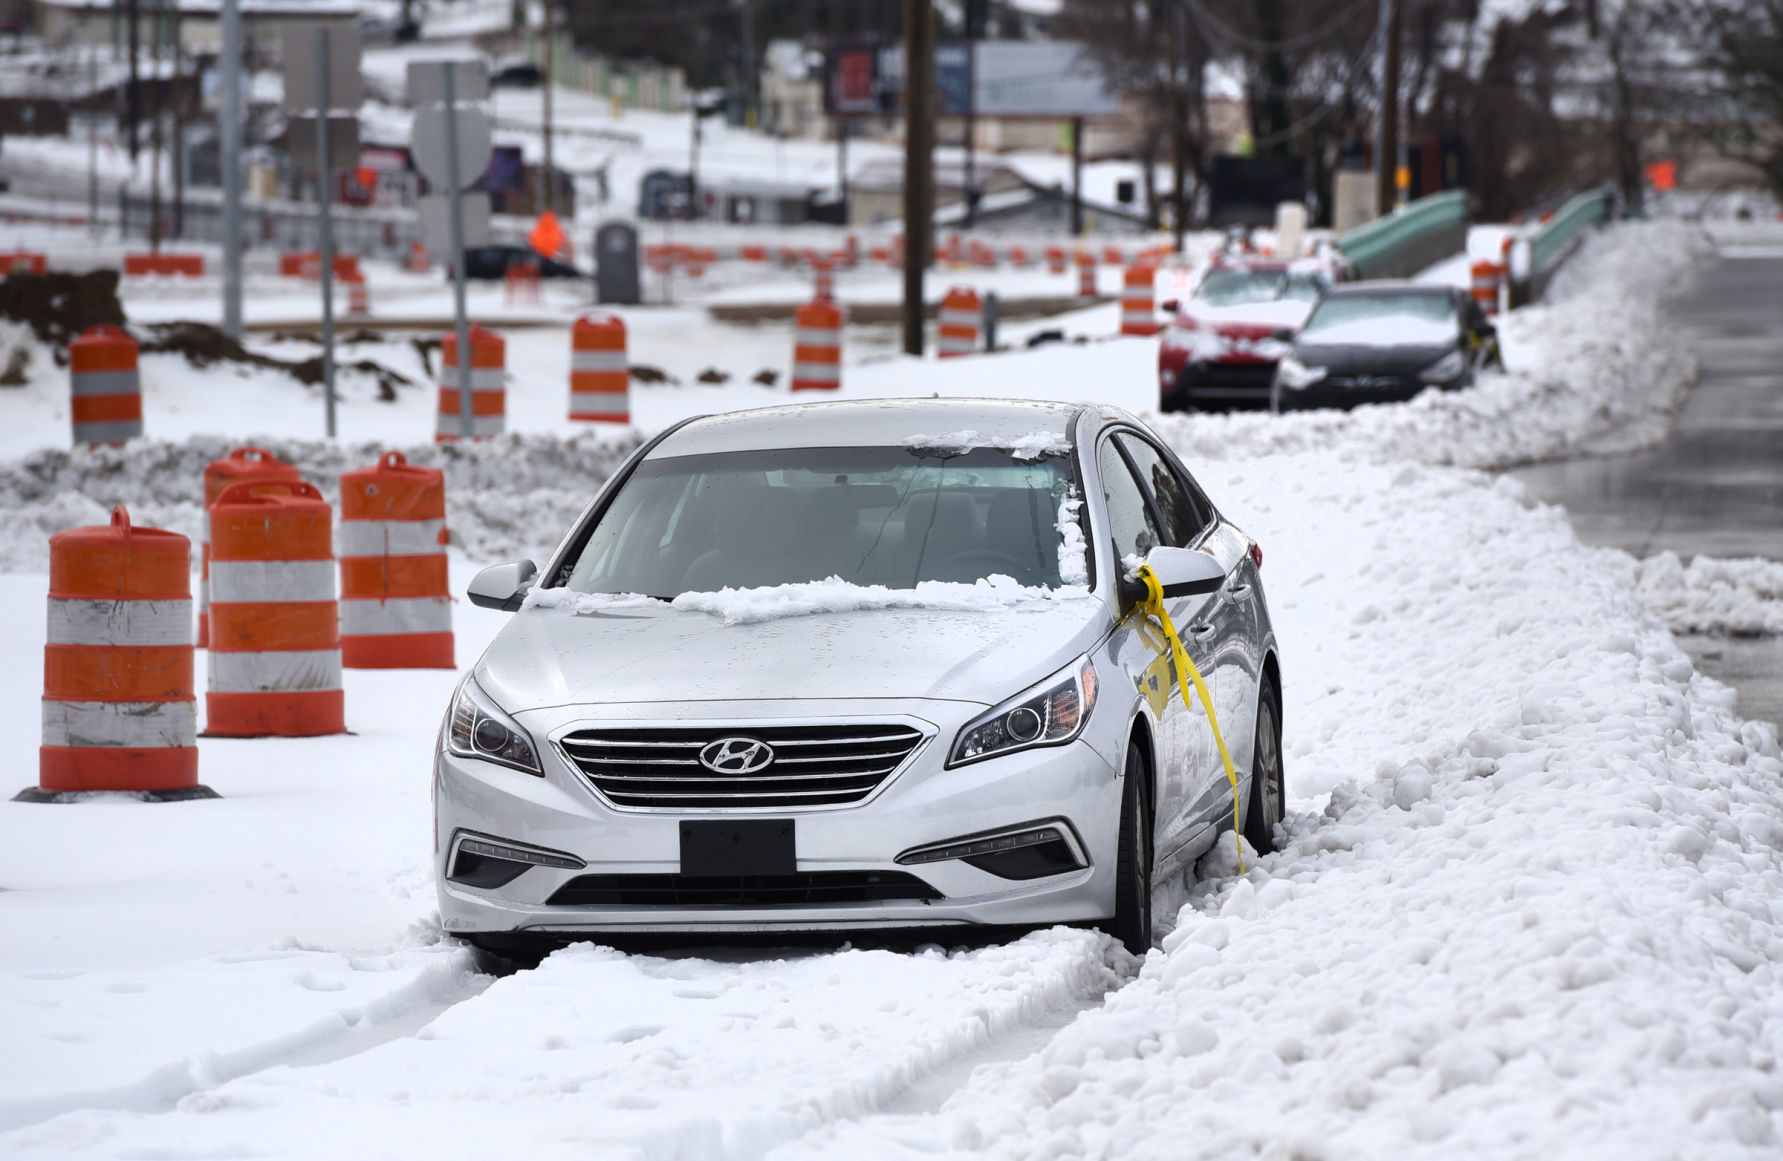 Winter storm delivers up to 14 inches of snow to Forsyth County, causing power outages, vehicle crashes and roof collapses | Winston Salem Journal